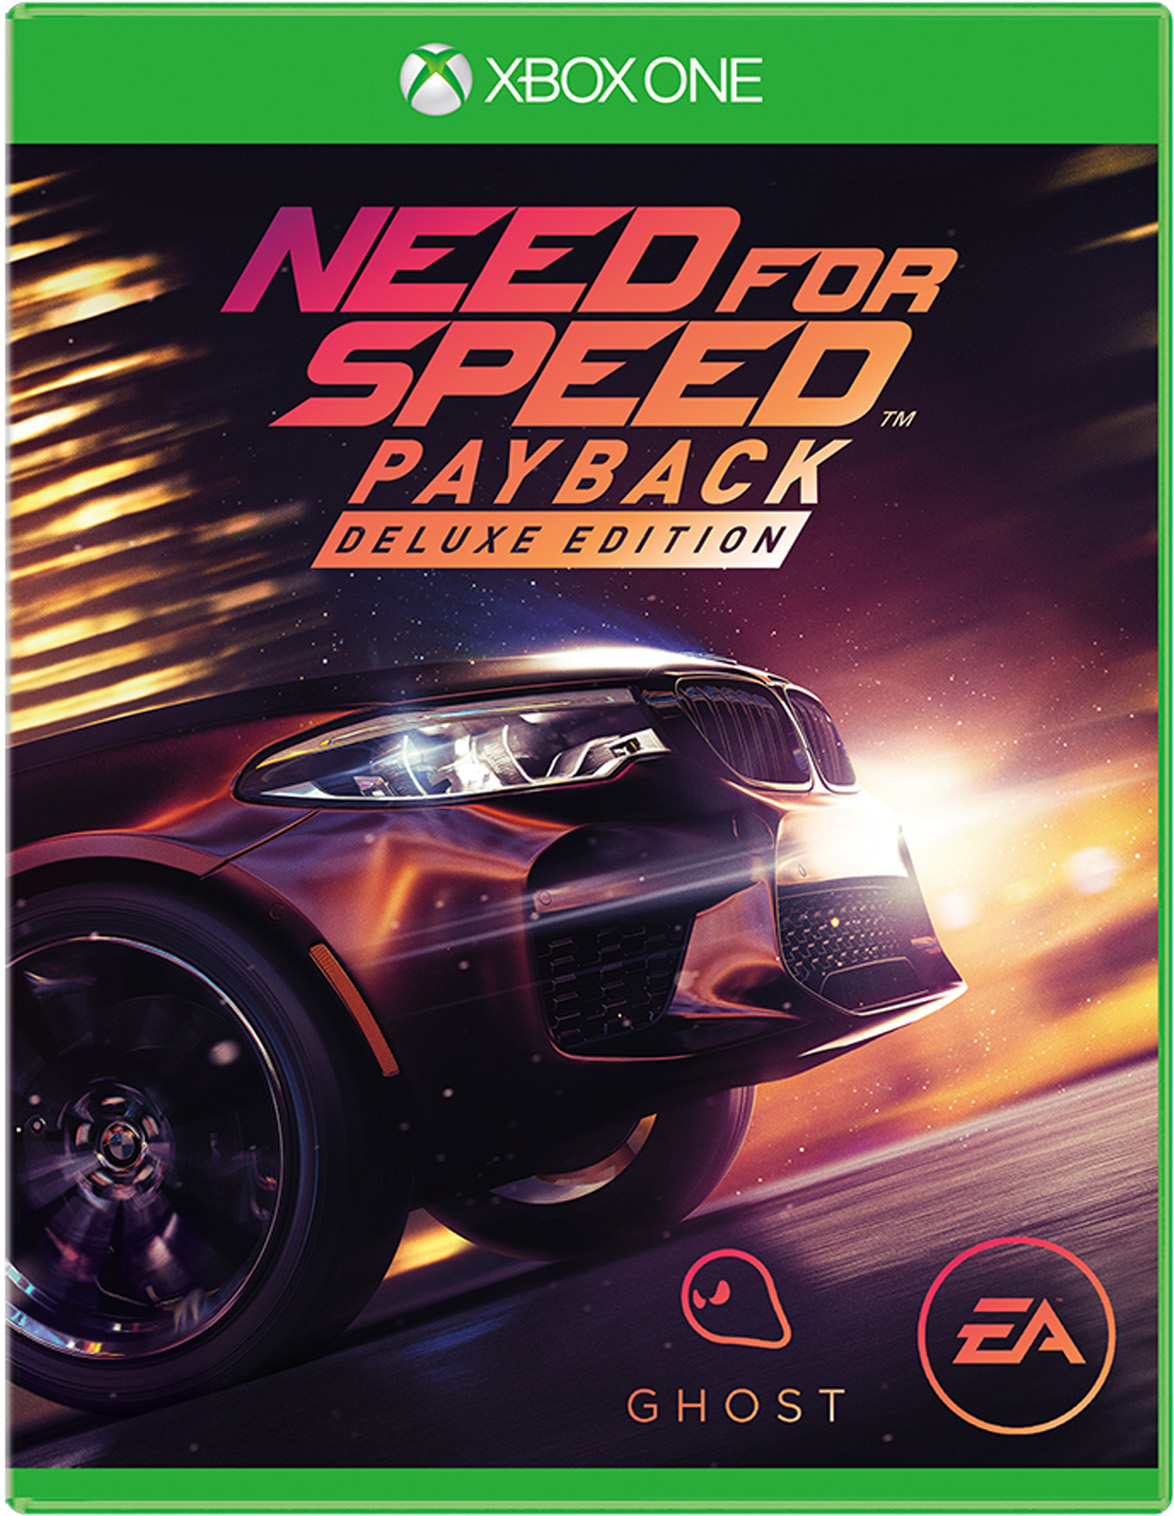 Need for Speed Payback Deluxe Edition for Xbox One Deal